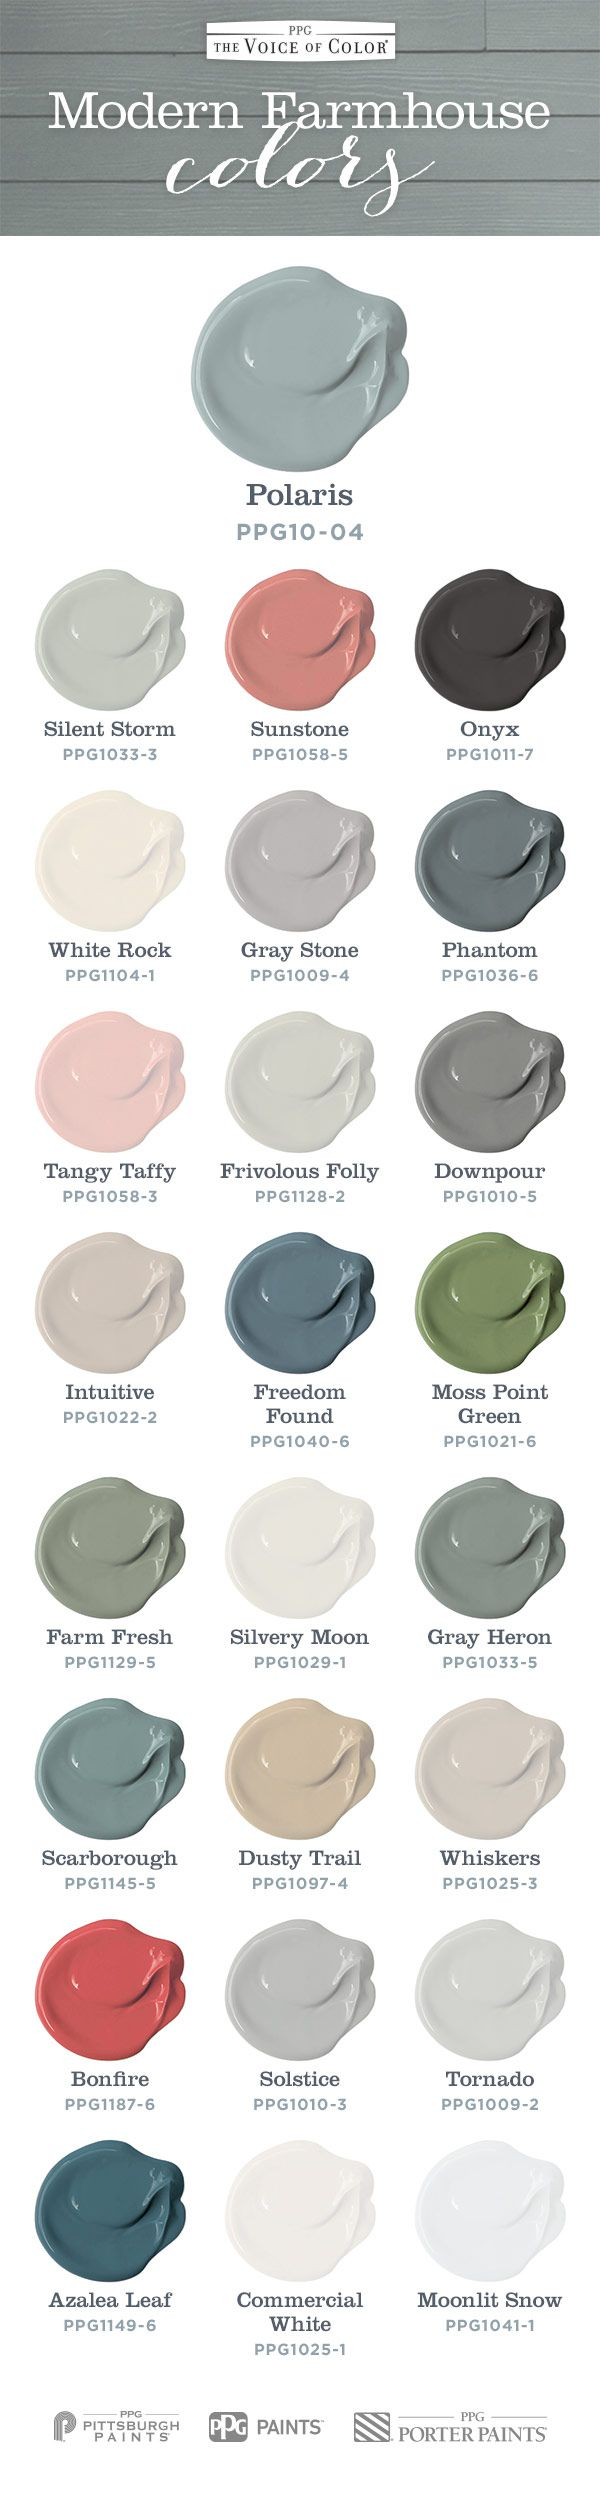 As Seen On Popular Design Show Fixer Upper With Designers Pulling From French Industrial And Country Styles Featuring These Paint Colors